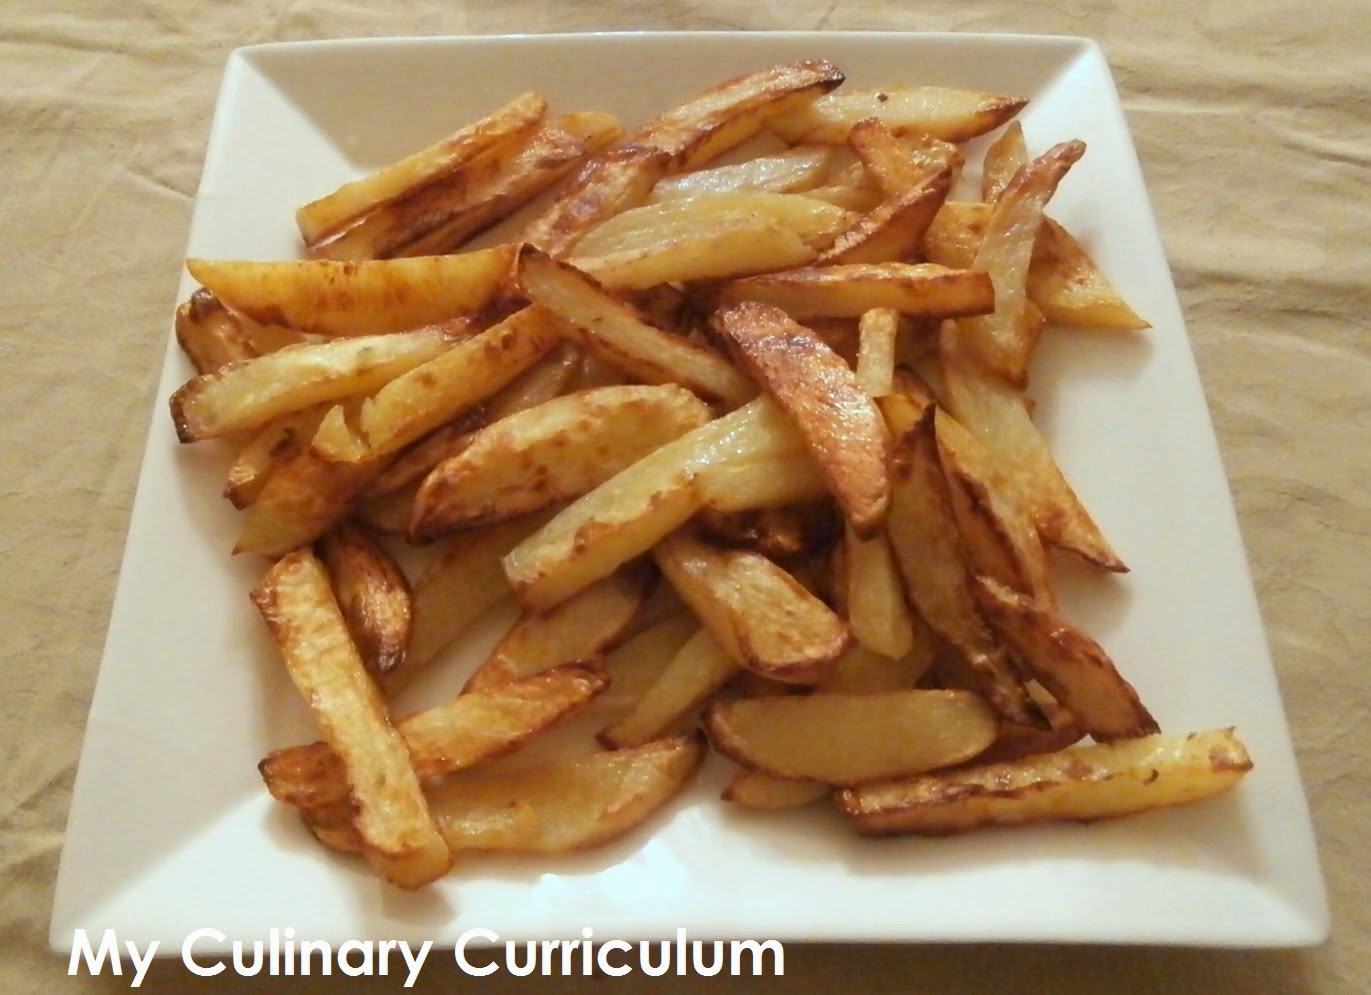 My culinary curriculum frites au four maison homemade chips - Frite friteuse au four ...